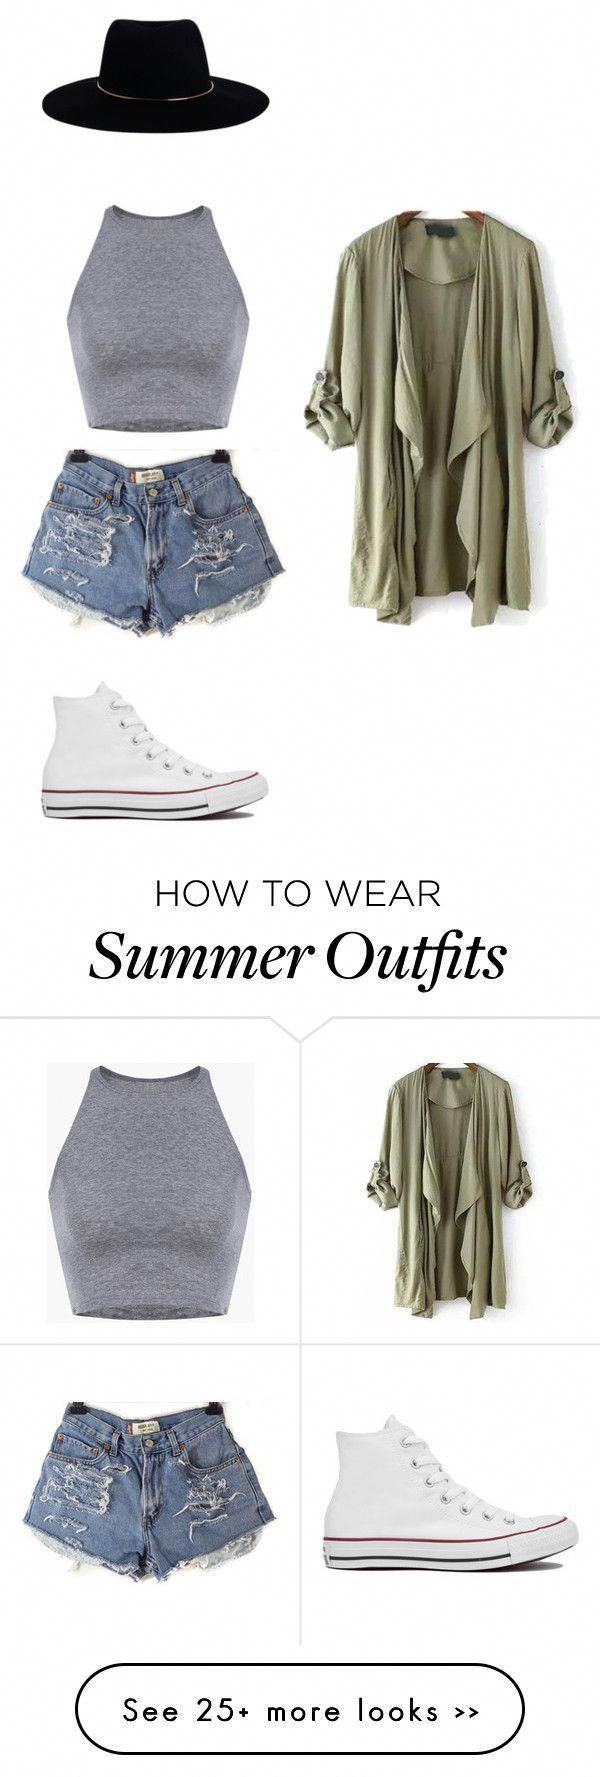 Summer outfit by maddygrace1 on Polyvore with carpenter and converse #cute